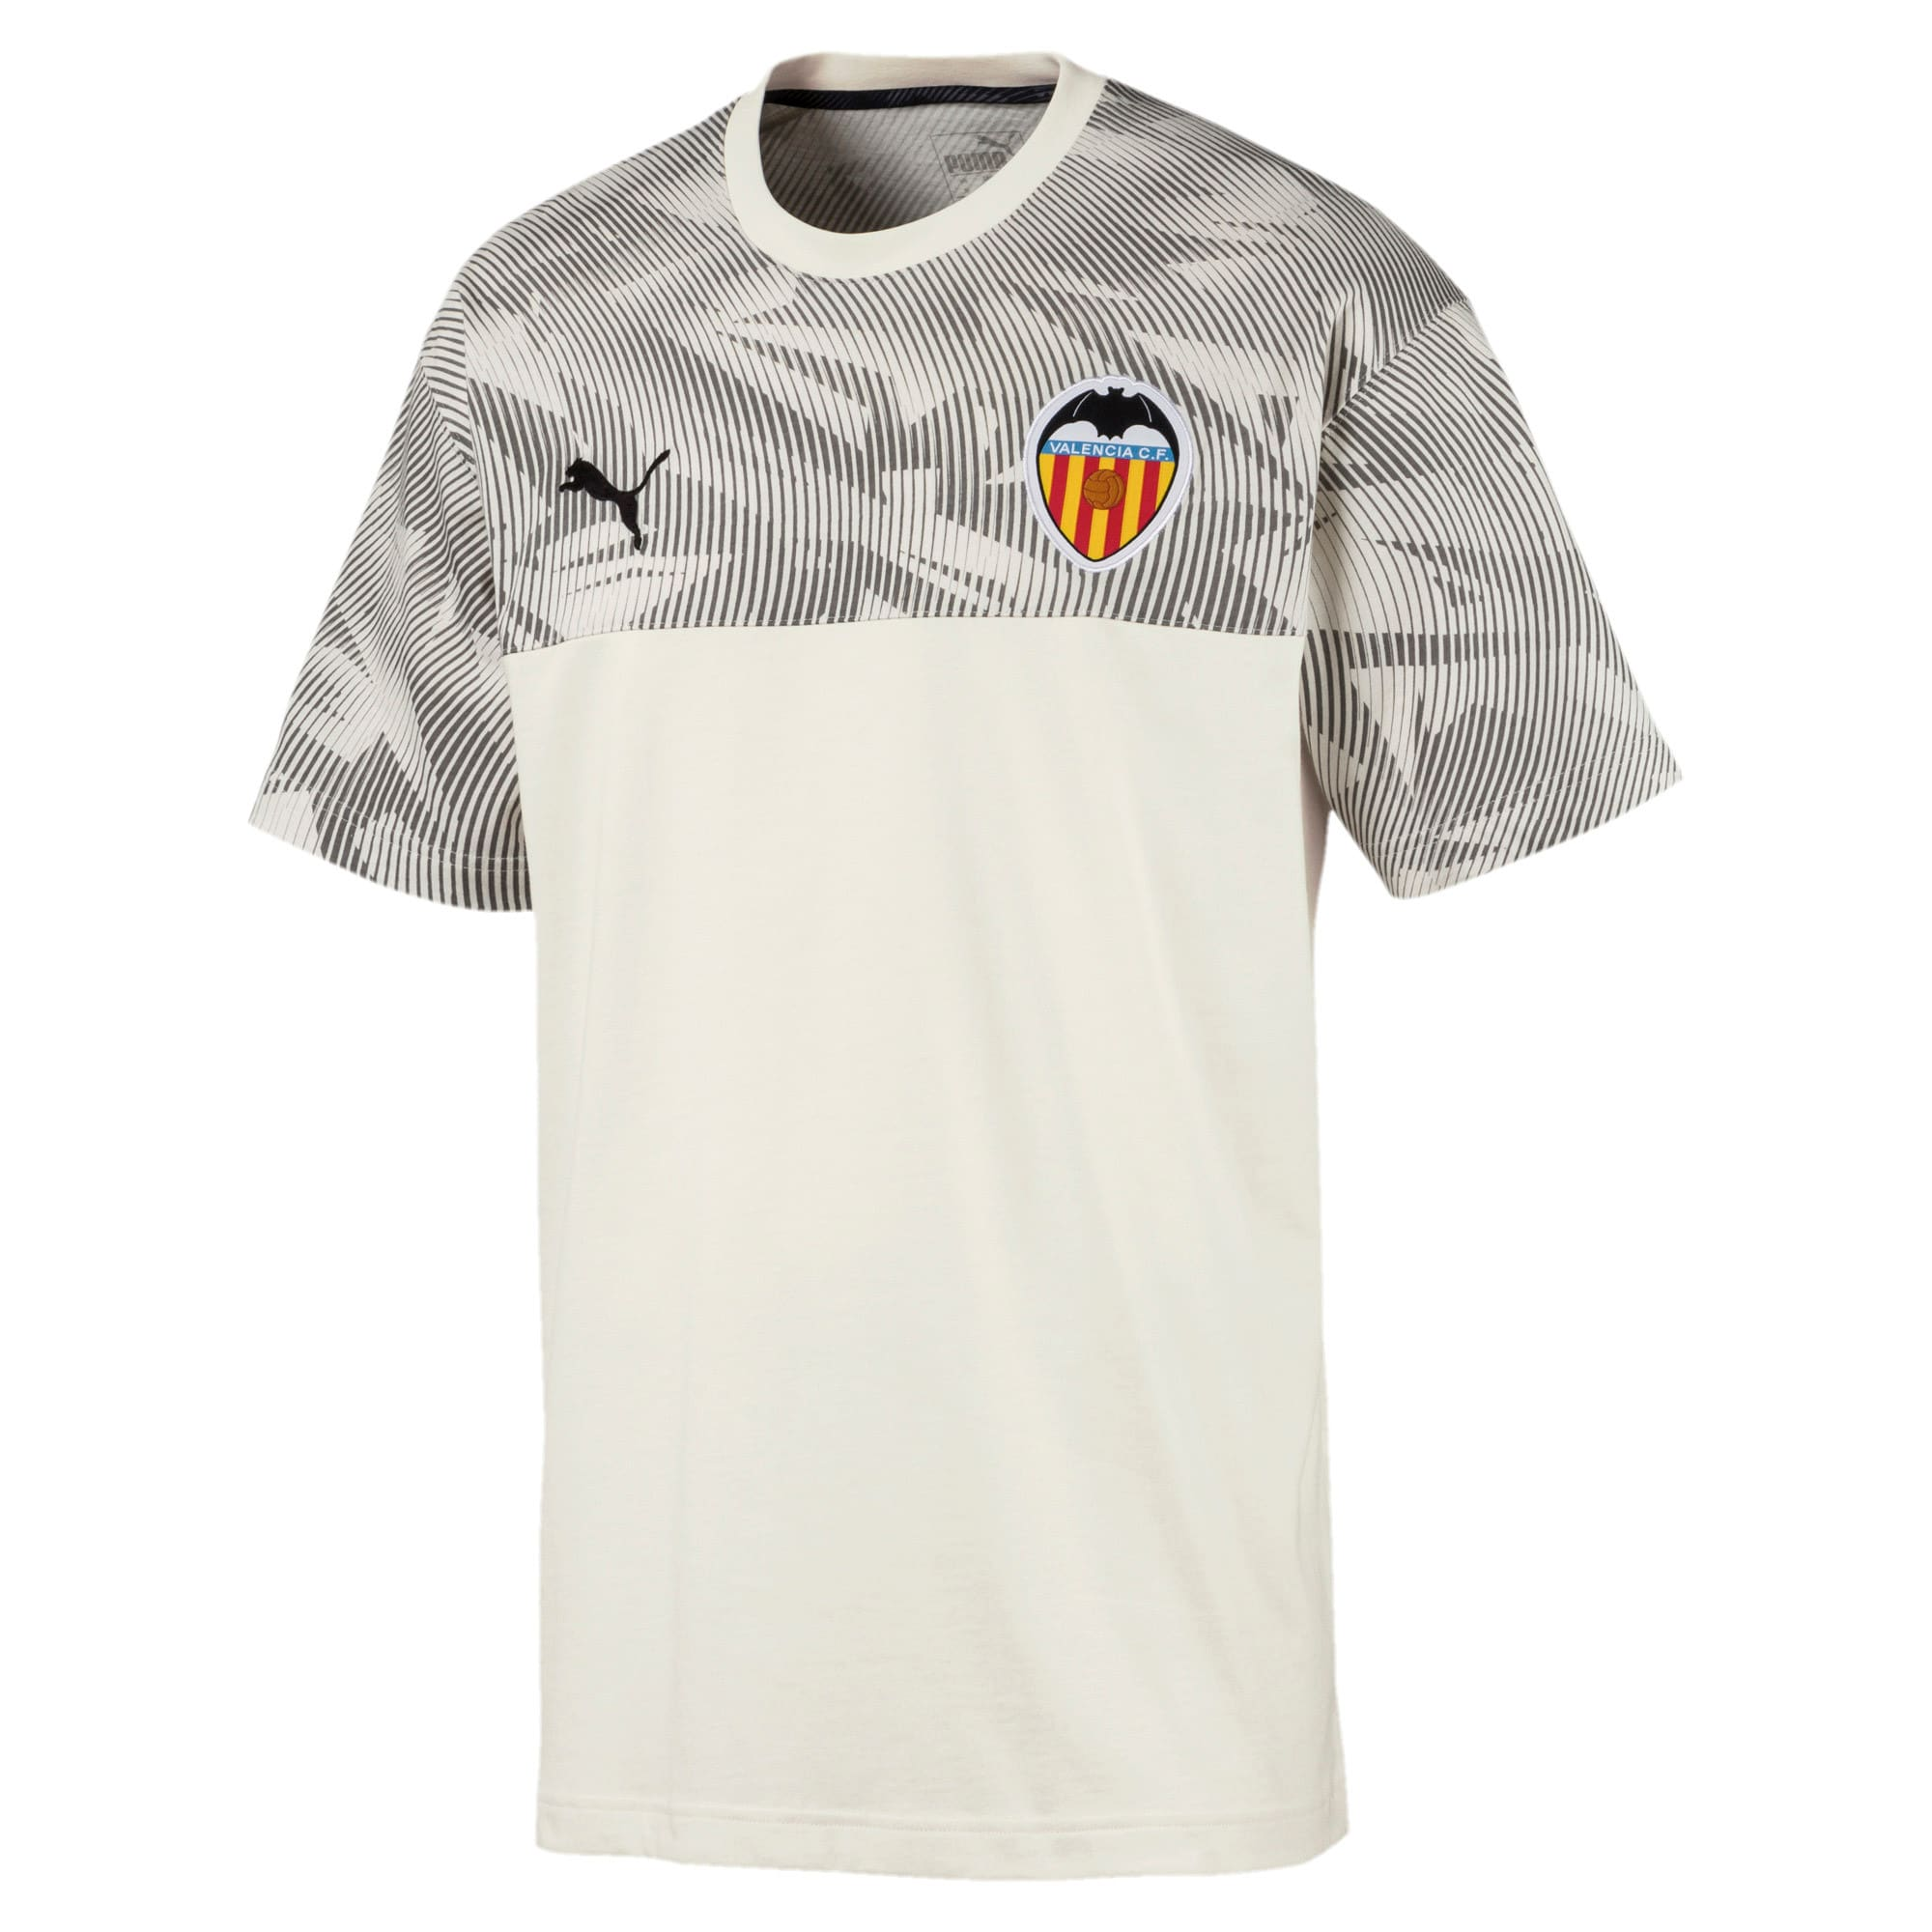 Valencia CF Casuals Men's Tee, Whisper White, large